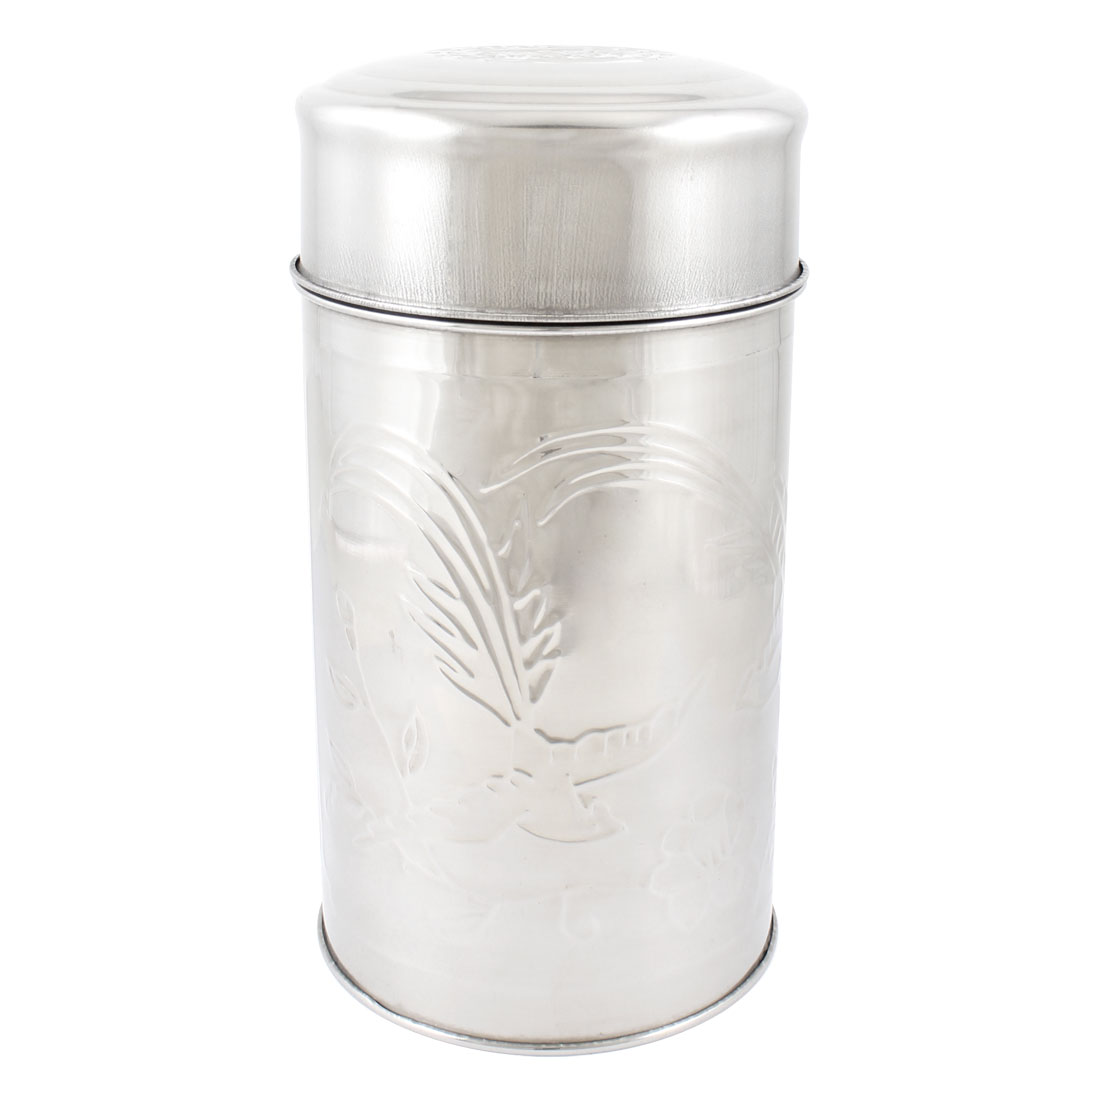 20cm High Flower Bird Print Cyinlder Shaped Tea Tin Canister Silver Tone